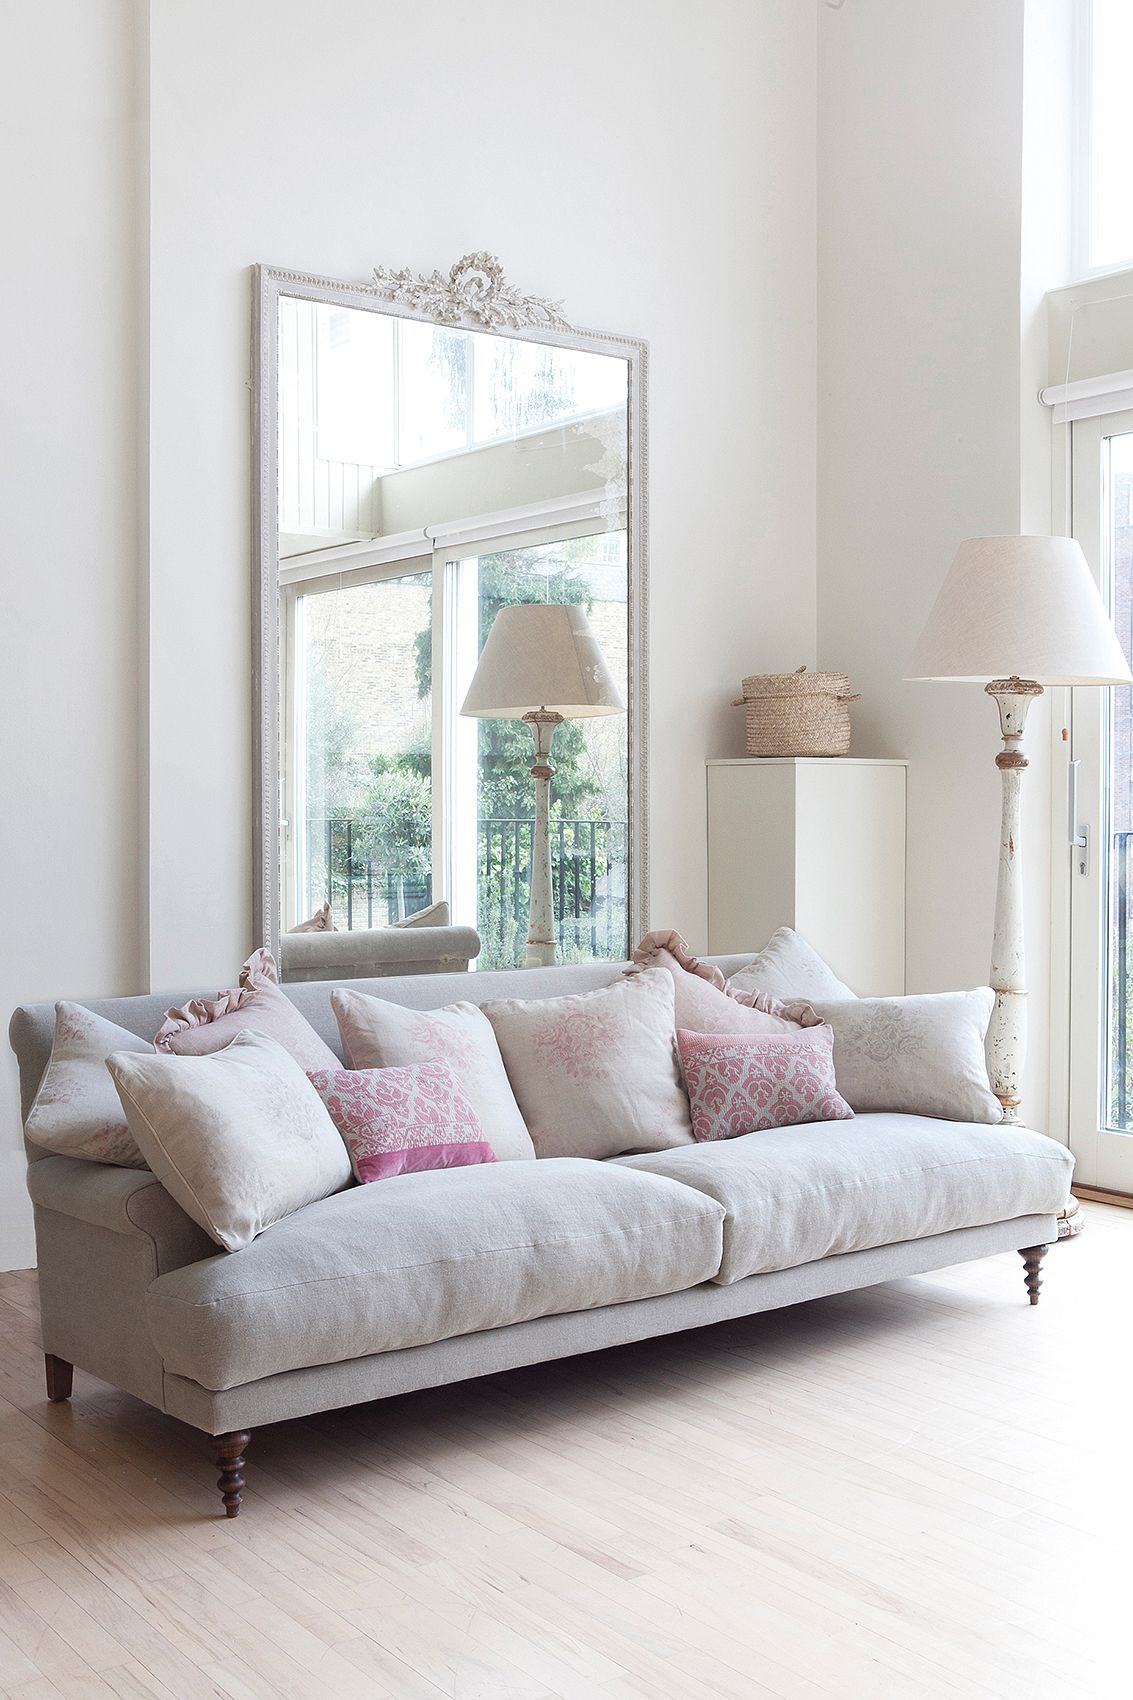 35 Sensational Sofa\'s You might love as much as your spouse ...